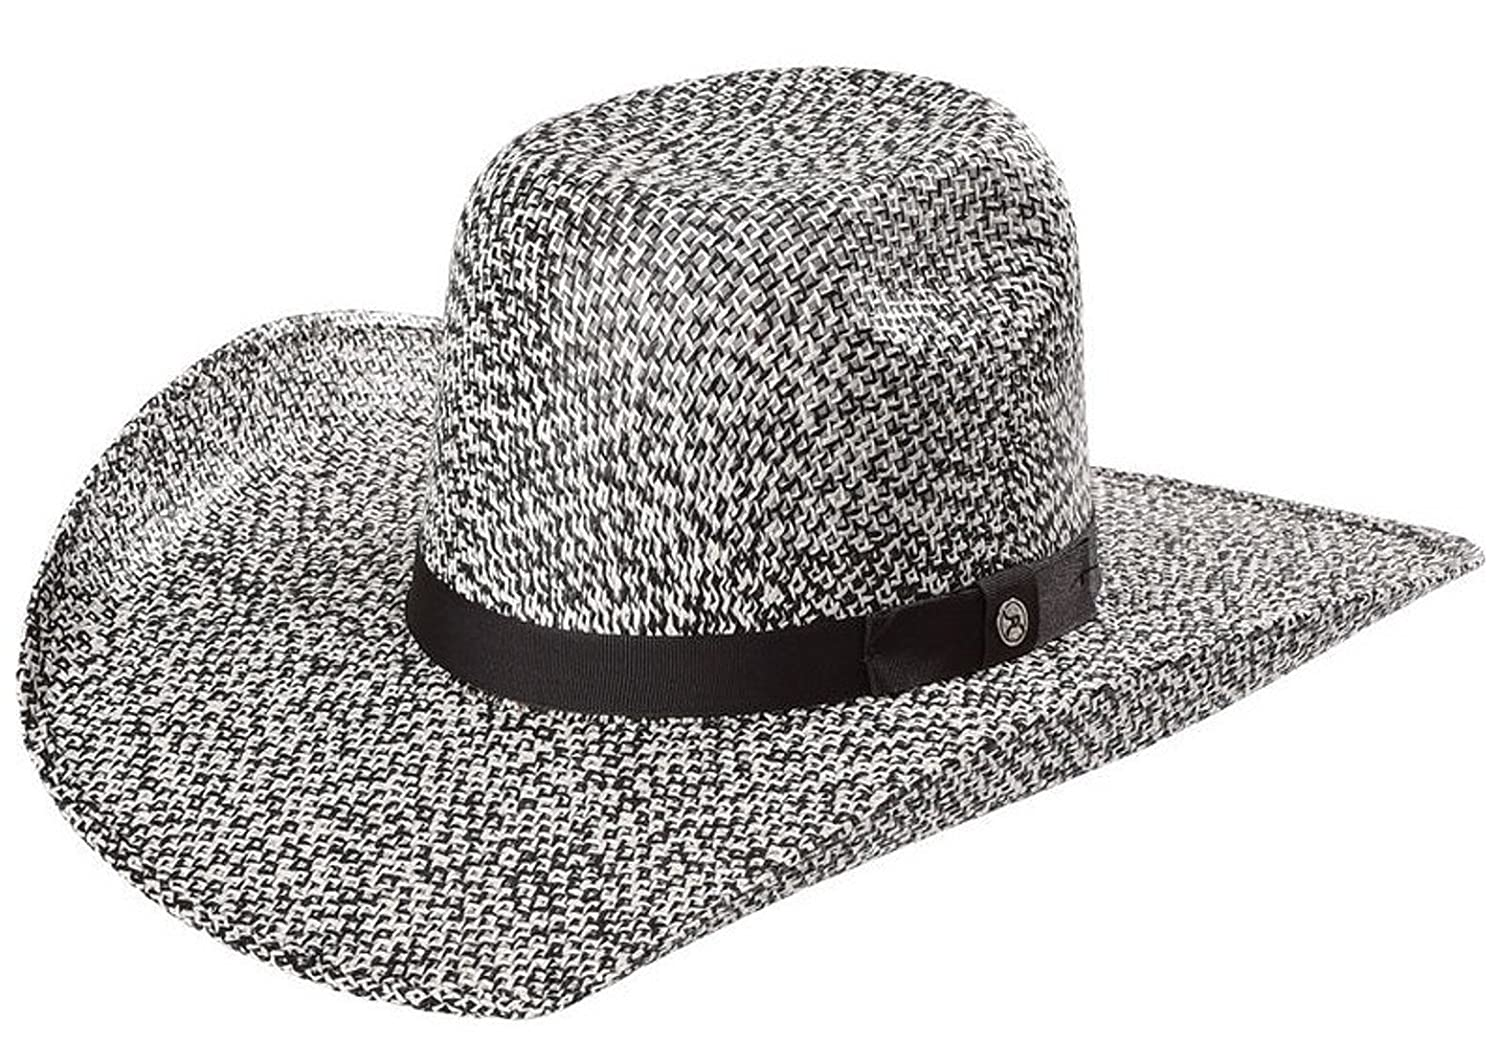 74170ab033db0 Resistol Hooey Collection Del Rio K Straw Cowboy Hat at Amazon Men s  Clothing store